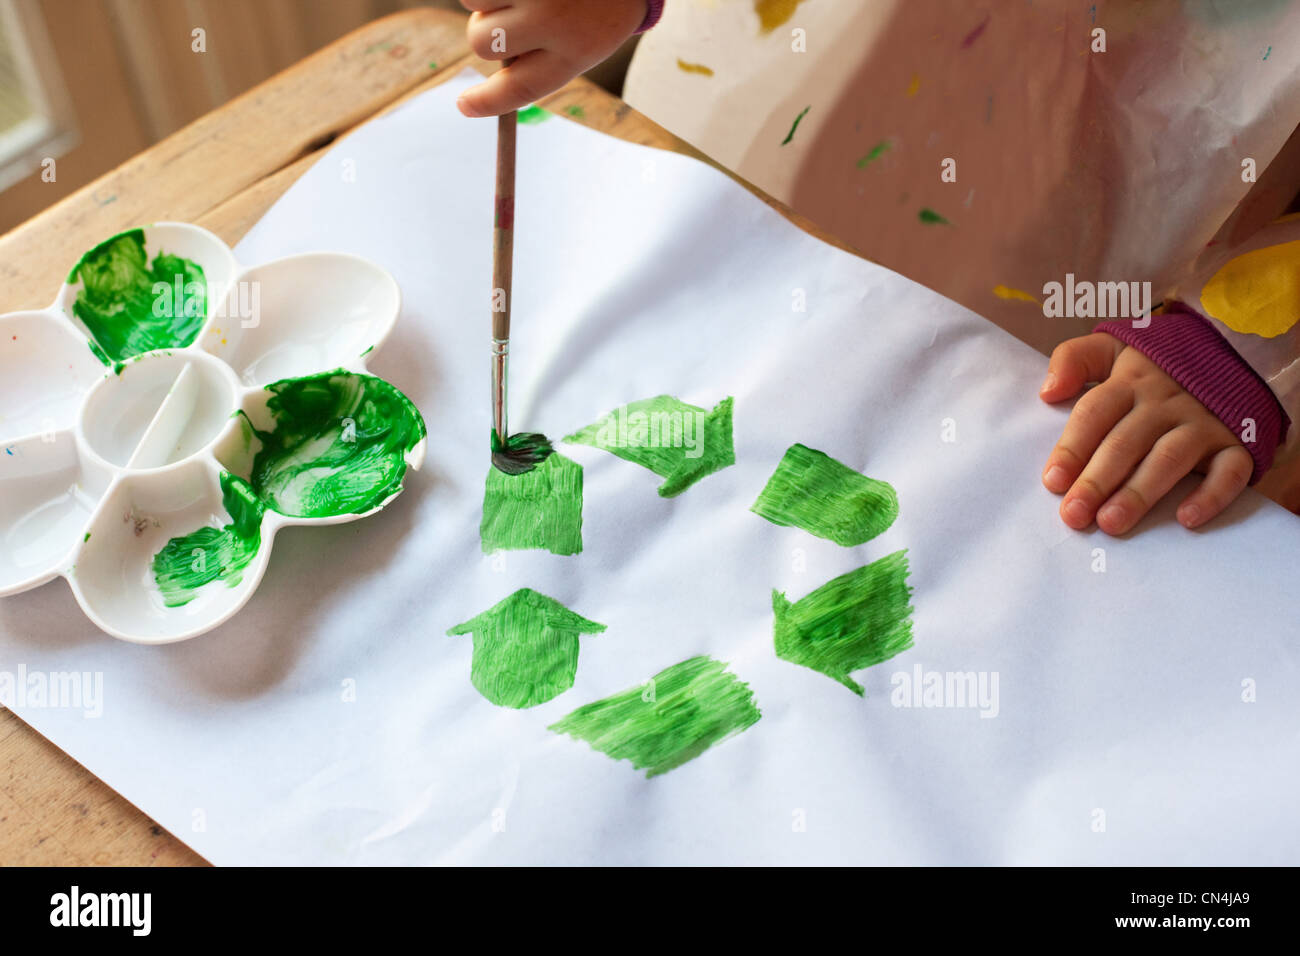 Child painting green recycling symbol - Stock Image